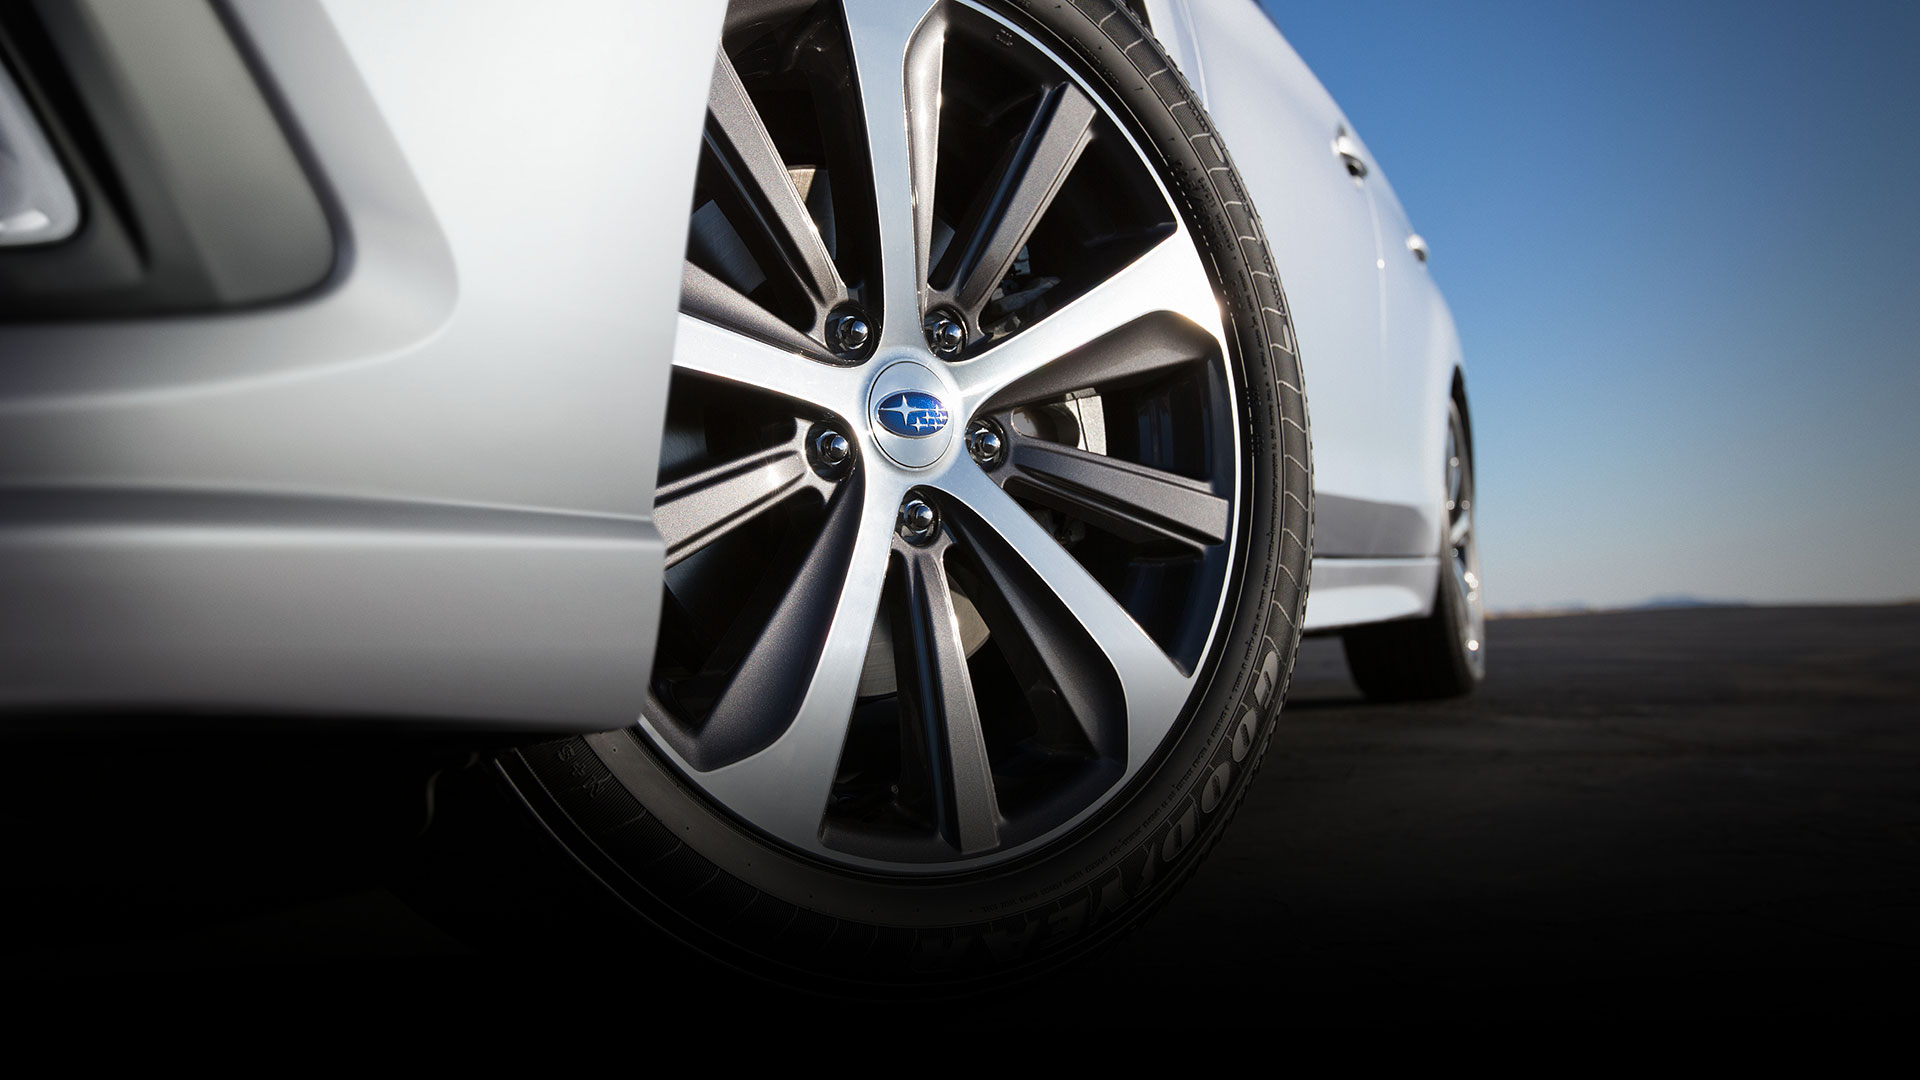 Large 18-inch alloy wheels offer a bold style for a sophisticated look.